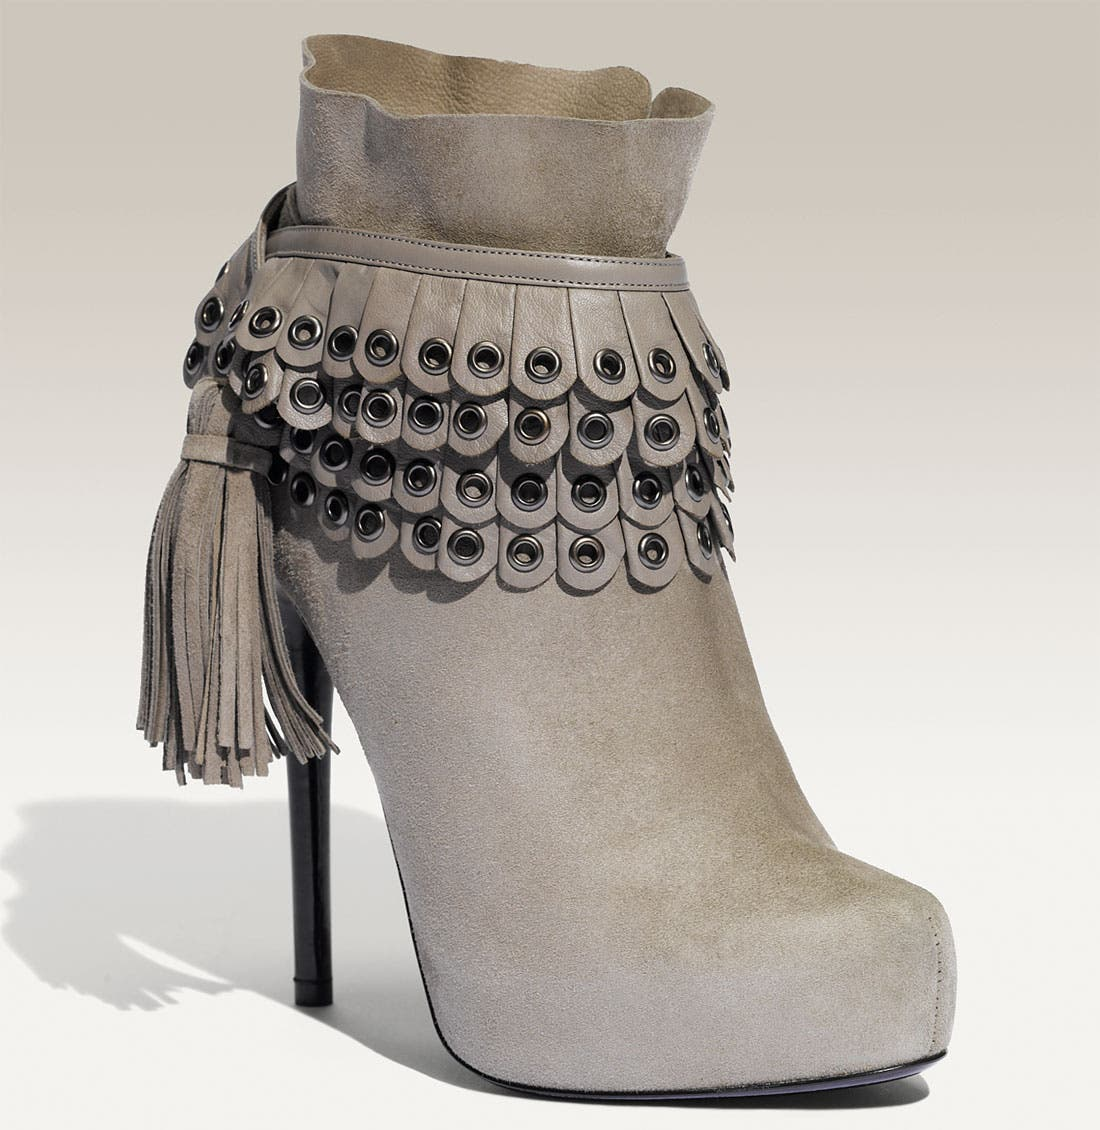 Main Image - 3.1 Phillip Lim 'Dee-Dee' Ankle Bootie